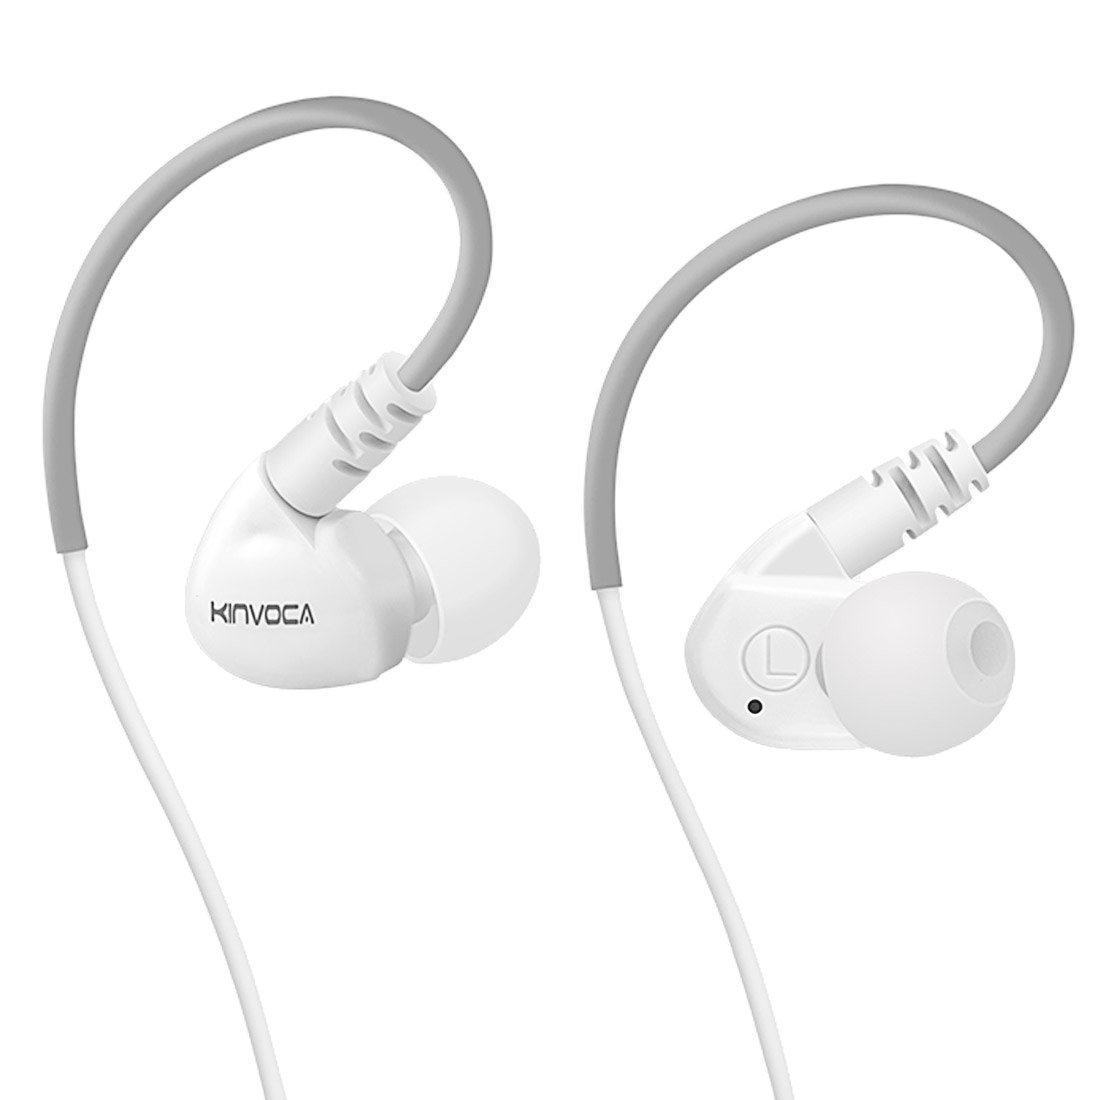 Auriculares KINVOCA Sweatproof Sports Workout Earphones para Correr Gym Exercise Jogging Con Cable Earhook con Volume Re